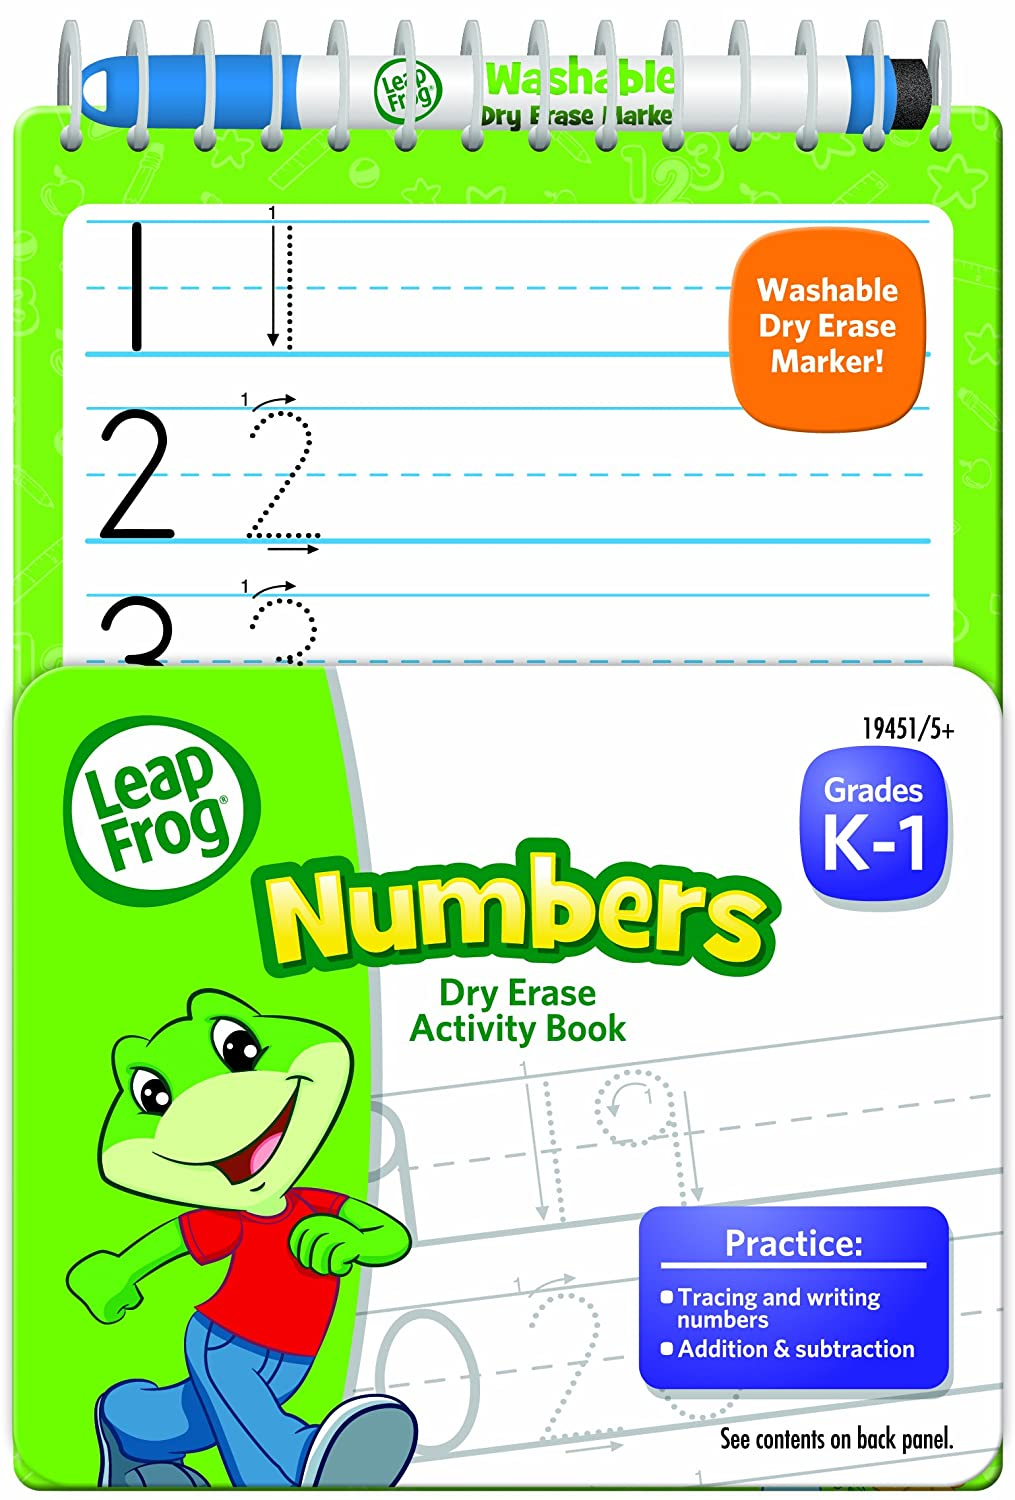 Amazon.com: LeapFrog Numbers Dry Erase Activity Book for Grades K-1 ...